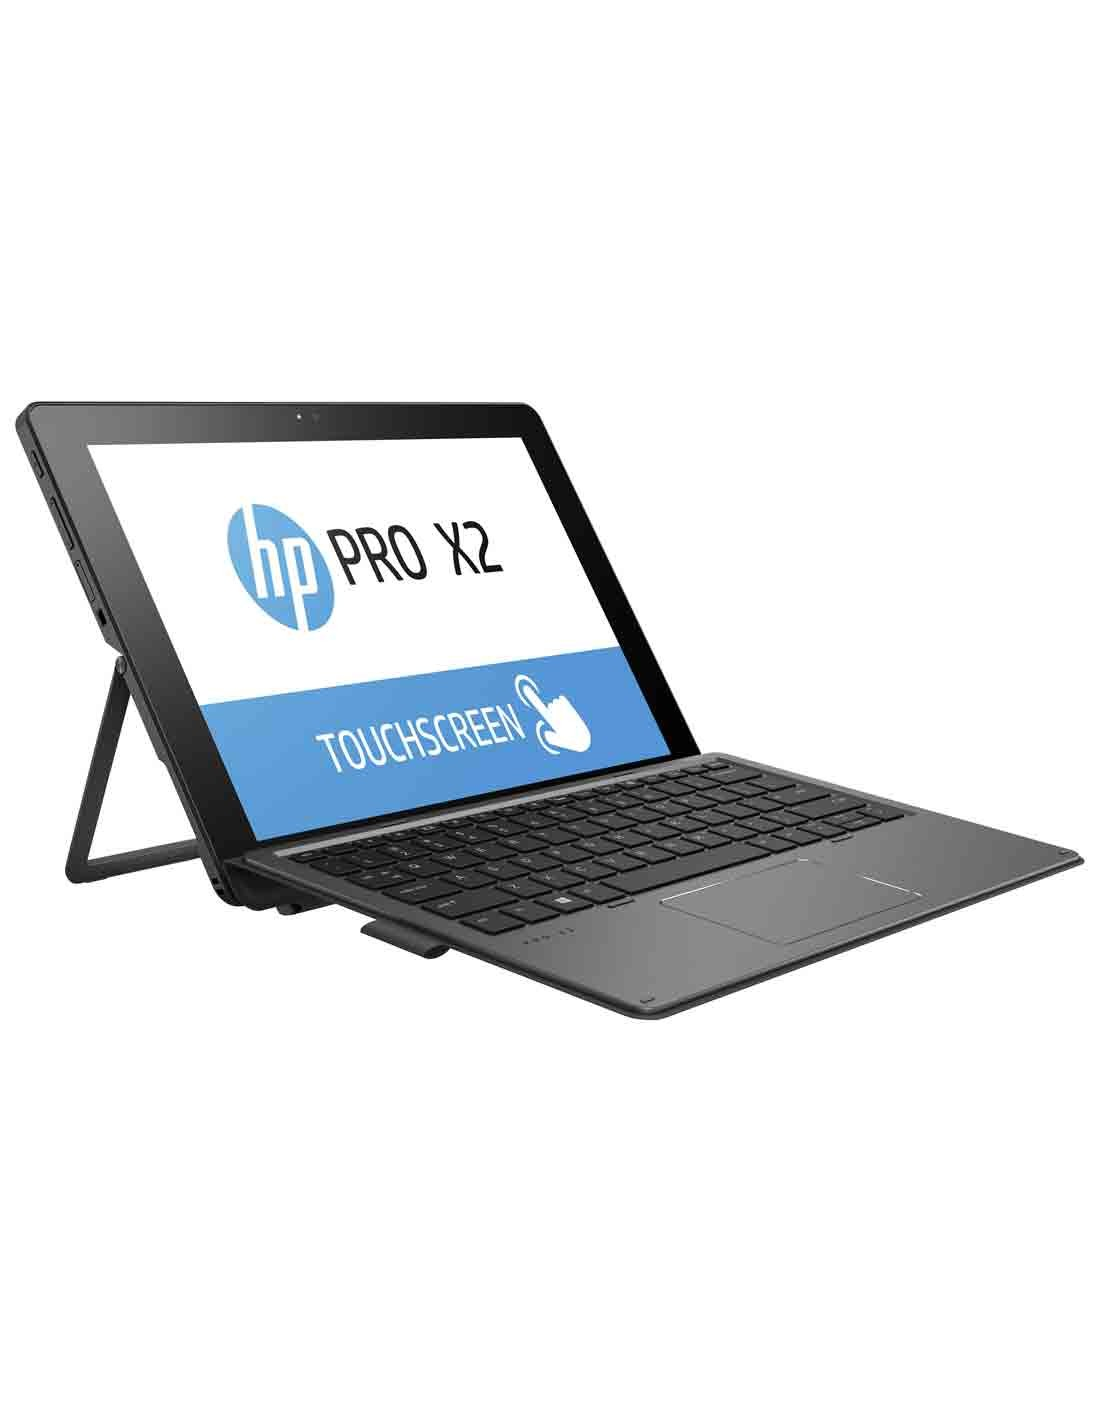 HP Pro x2 612 G2 Detachable at the cheapest price and fast free delivery in Dubai